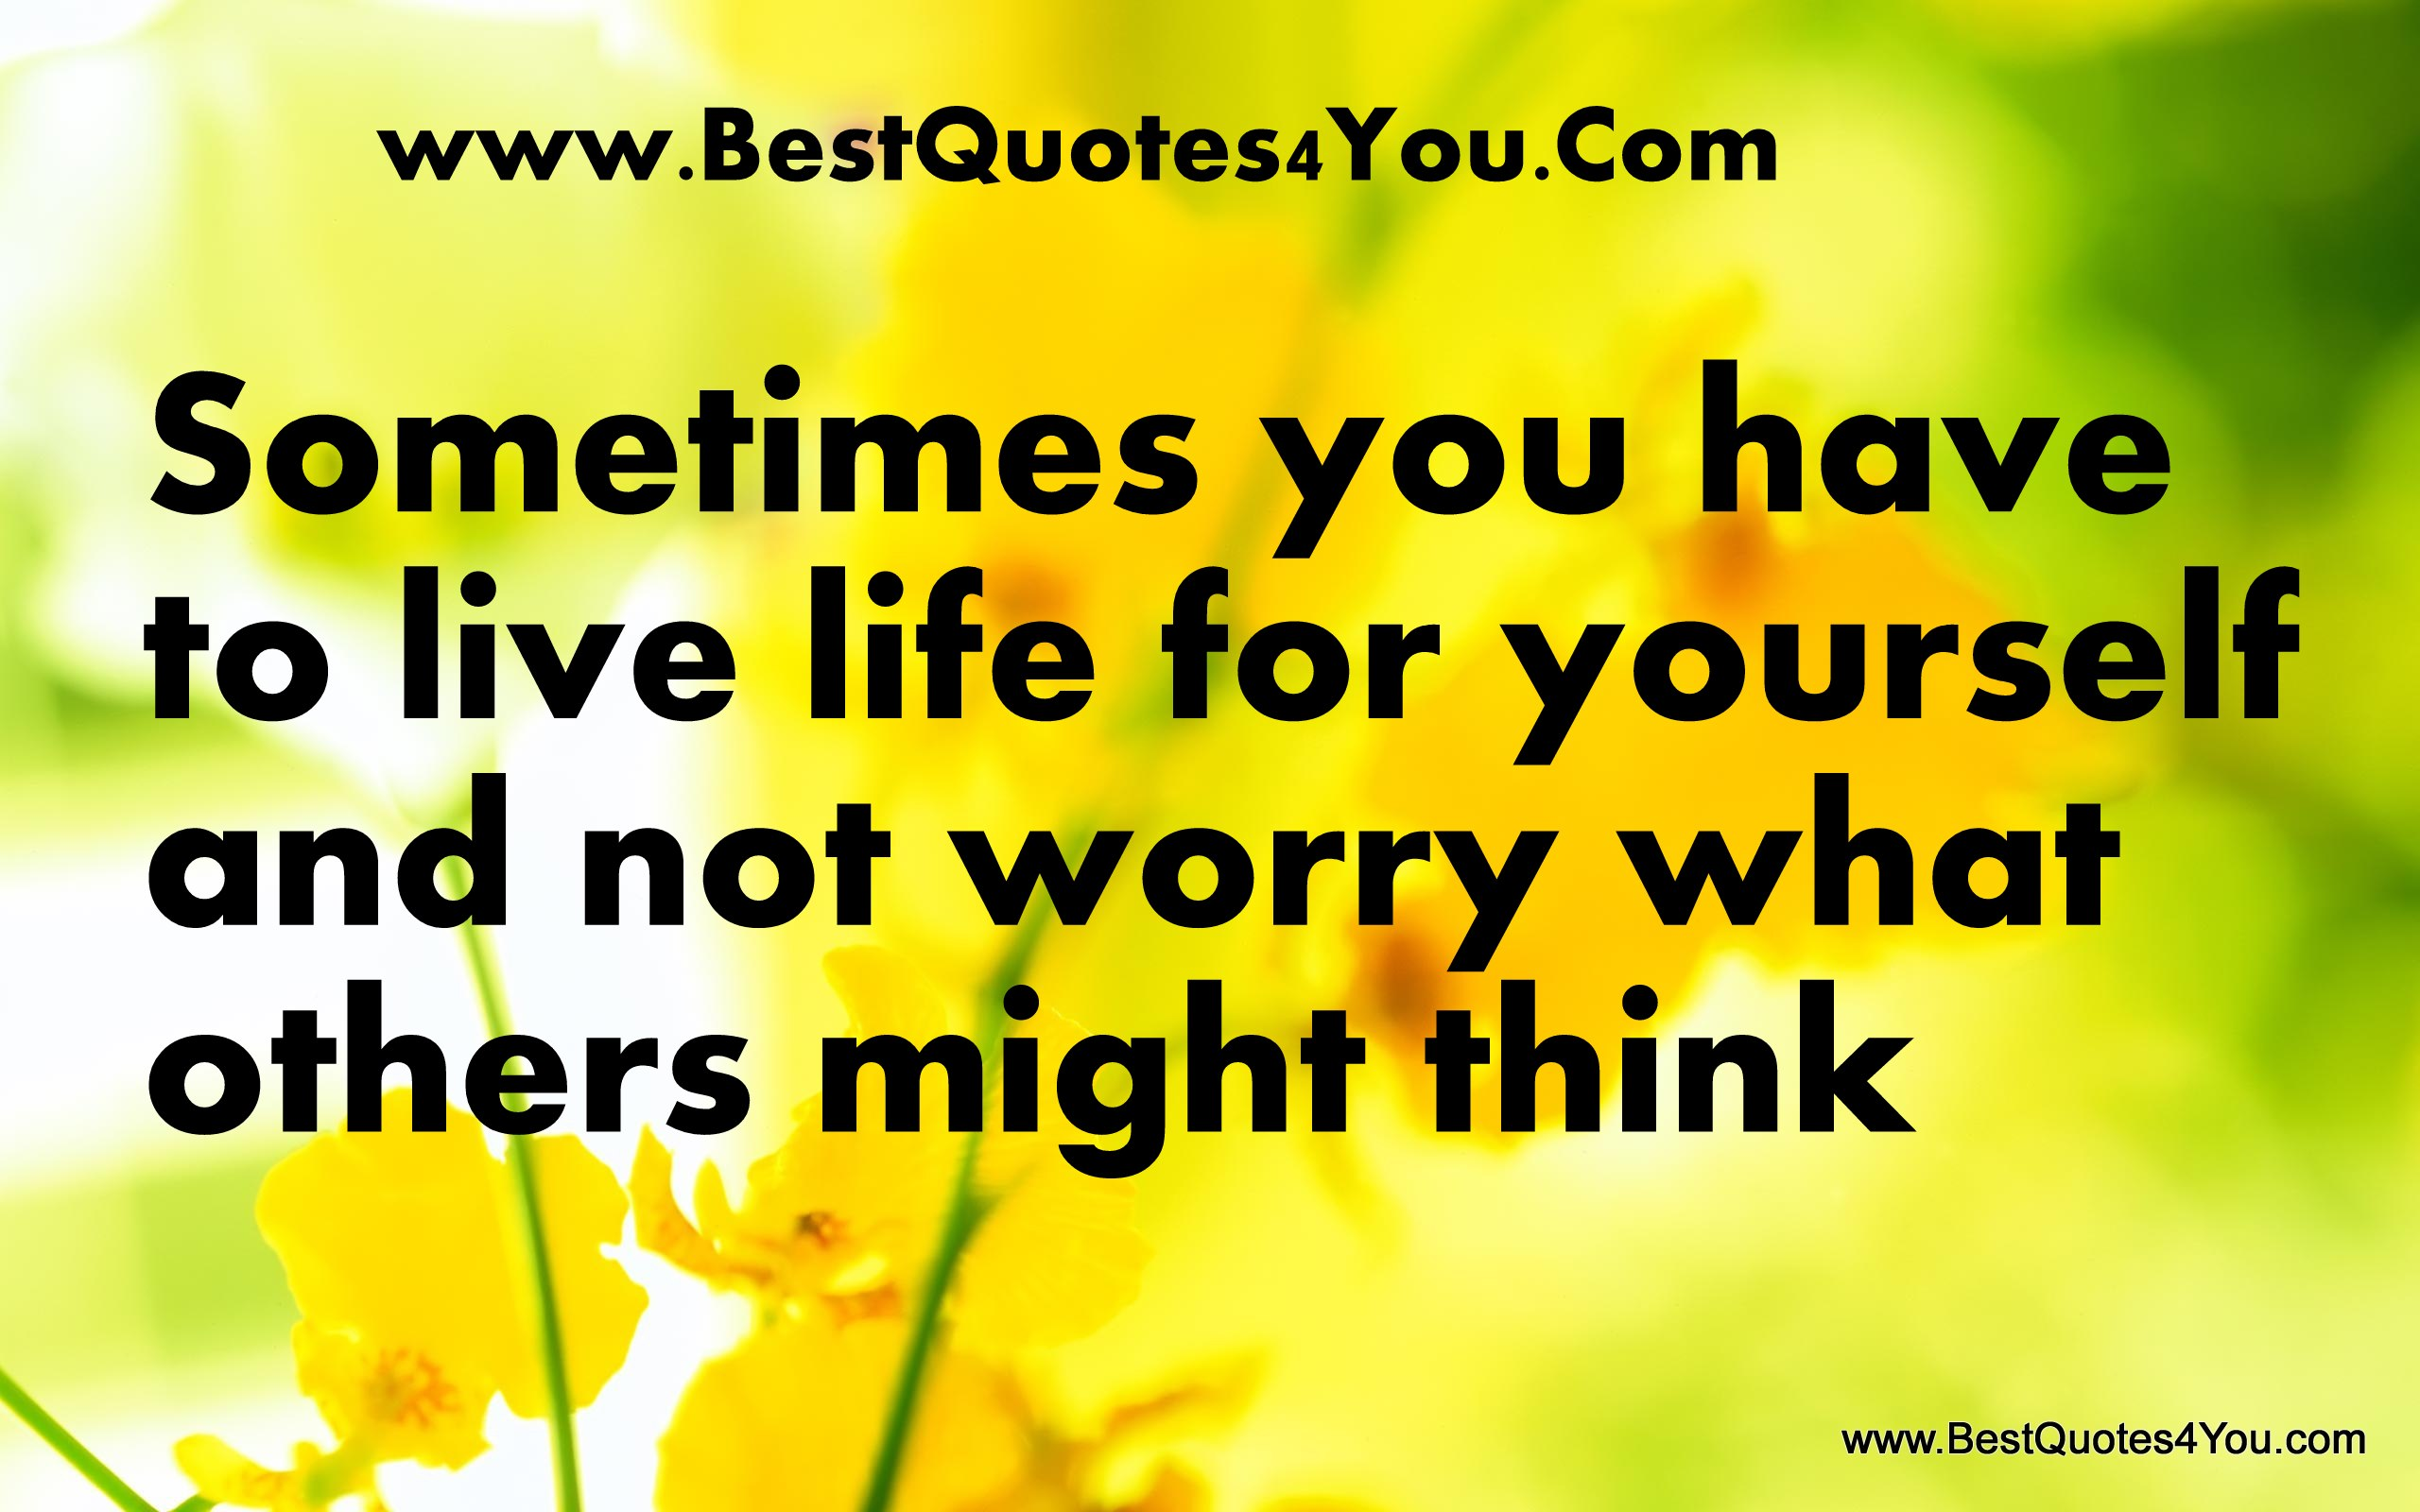 Worry About Yourself Quotes. QuotesGram